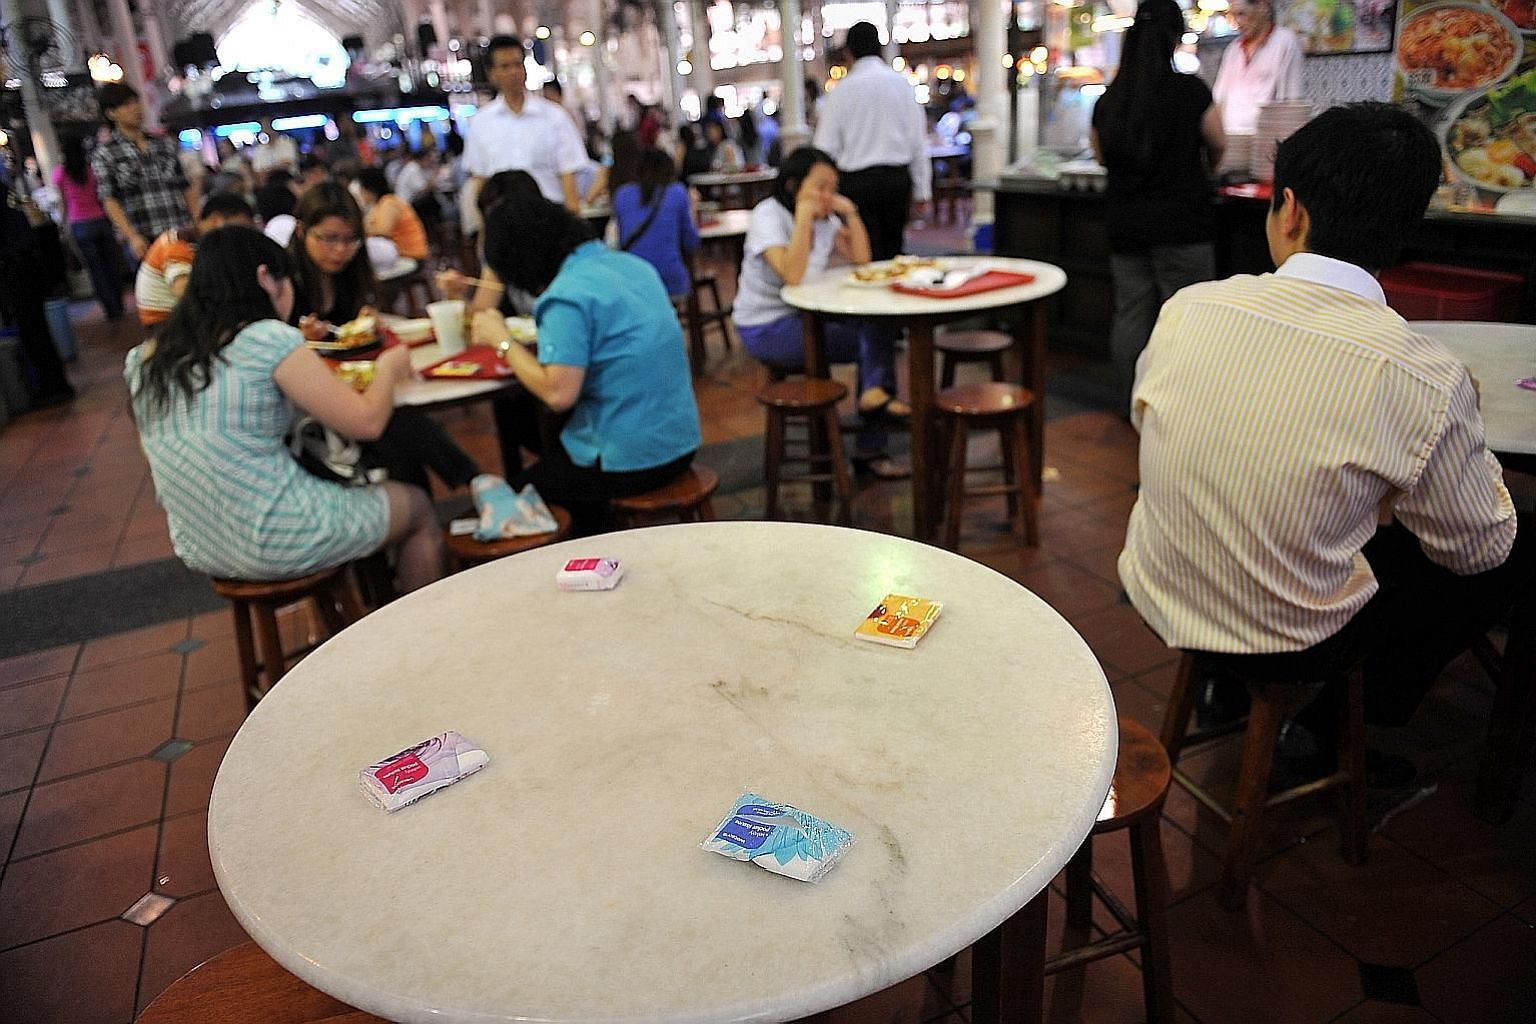 Packets of tissue paper being used to reserve a table at a hawker centre. Mr Ronald Lee says such a practice should be disallowed.